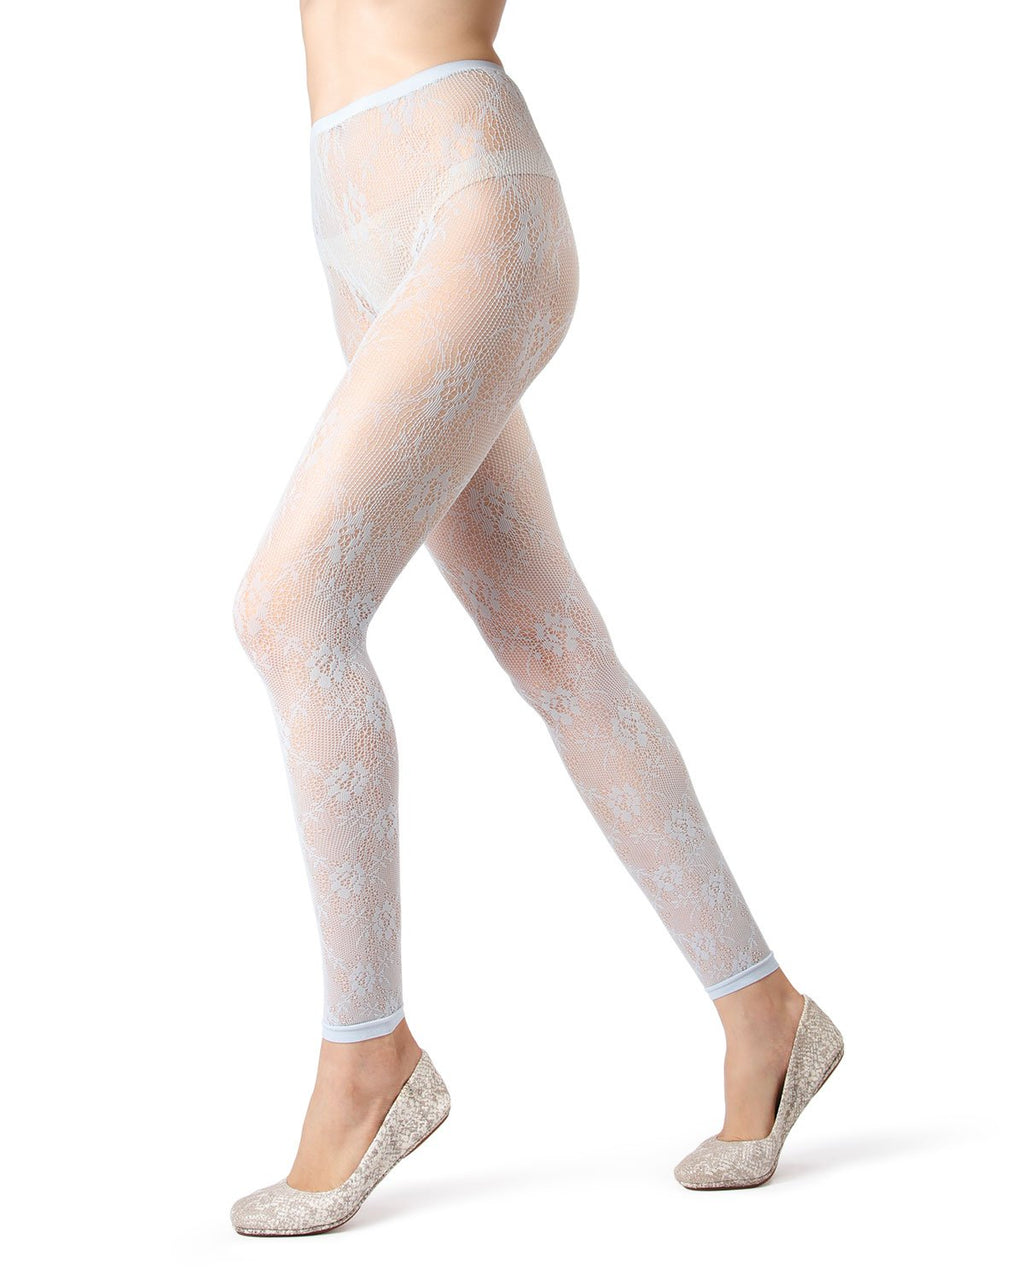 MeMoi Baby Blue Romantic Lace Footless Tights | Women's Tights - Hosiery - Pantyhose